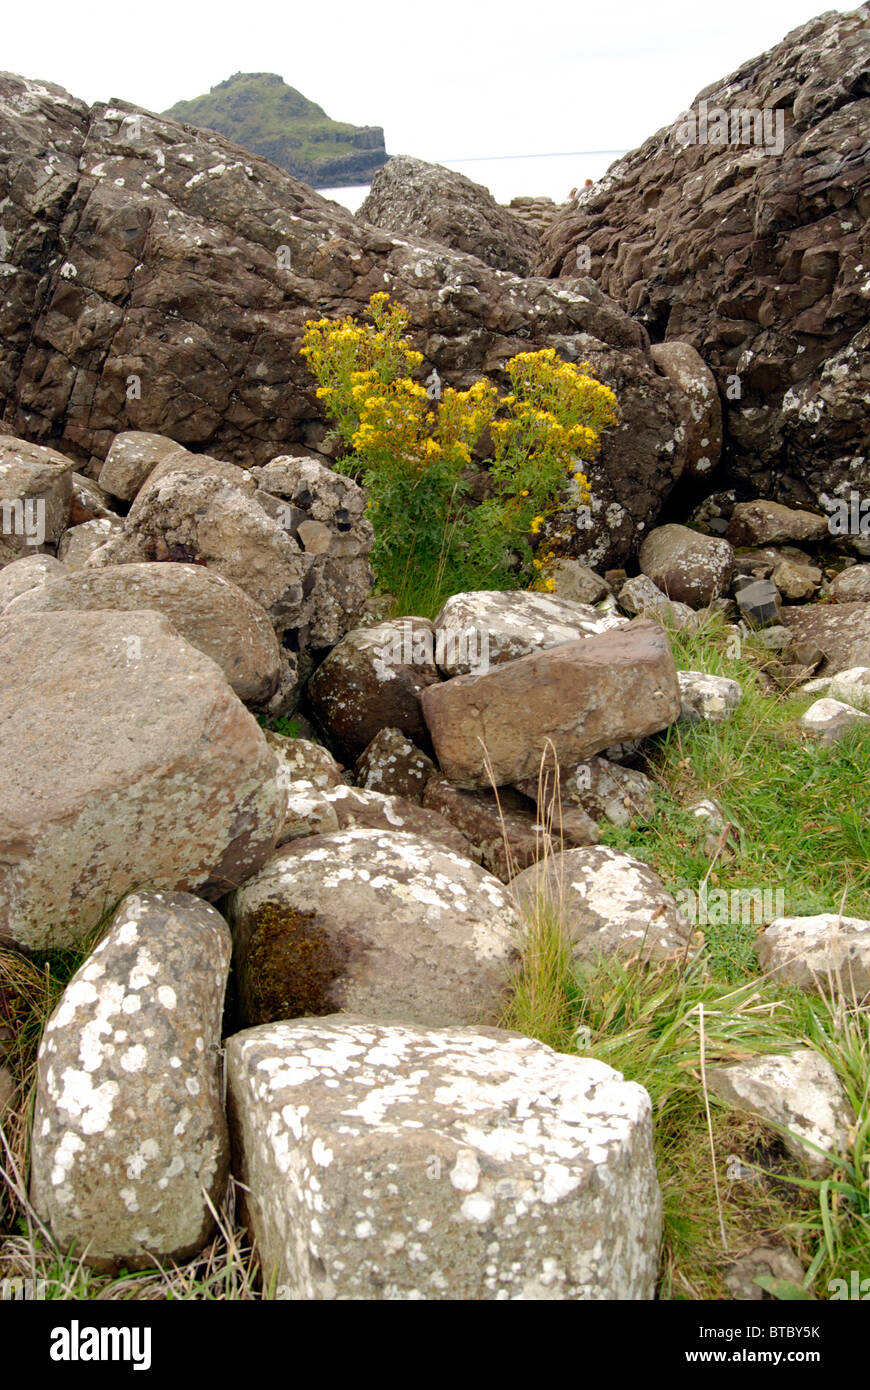 Wild yellow flowers at the Giants Causeway, County Antrim, Northern Ireland - Stock Image